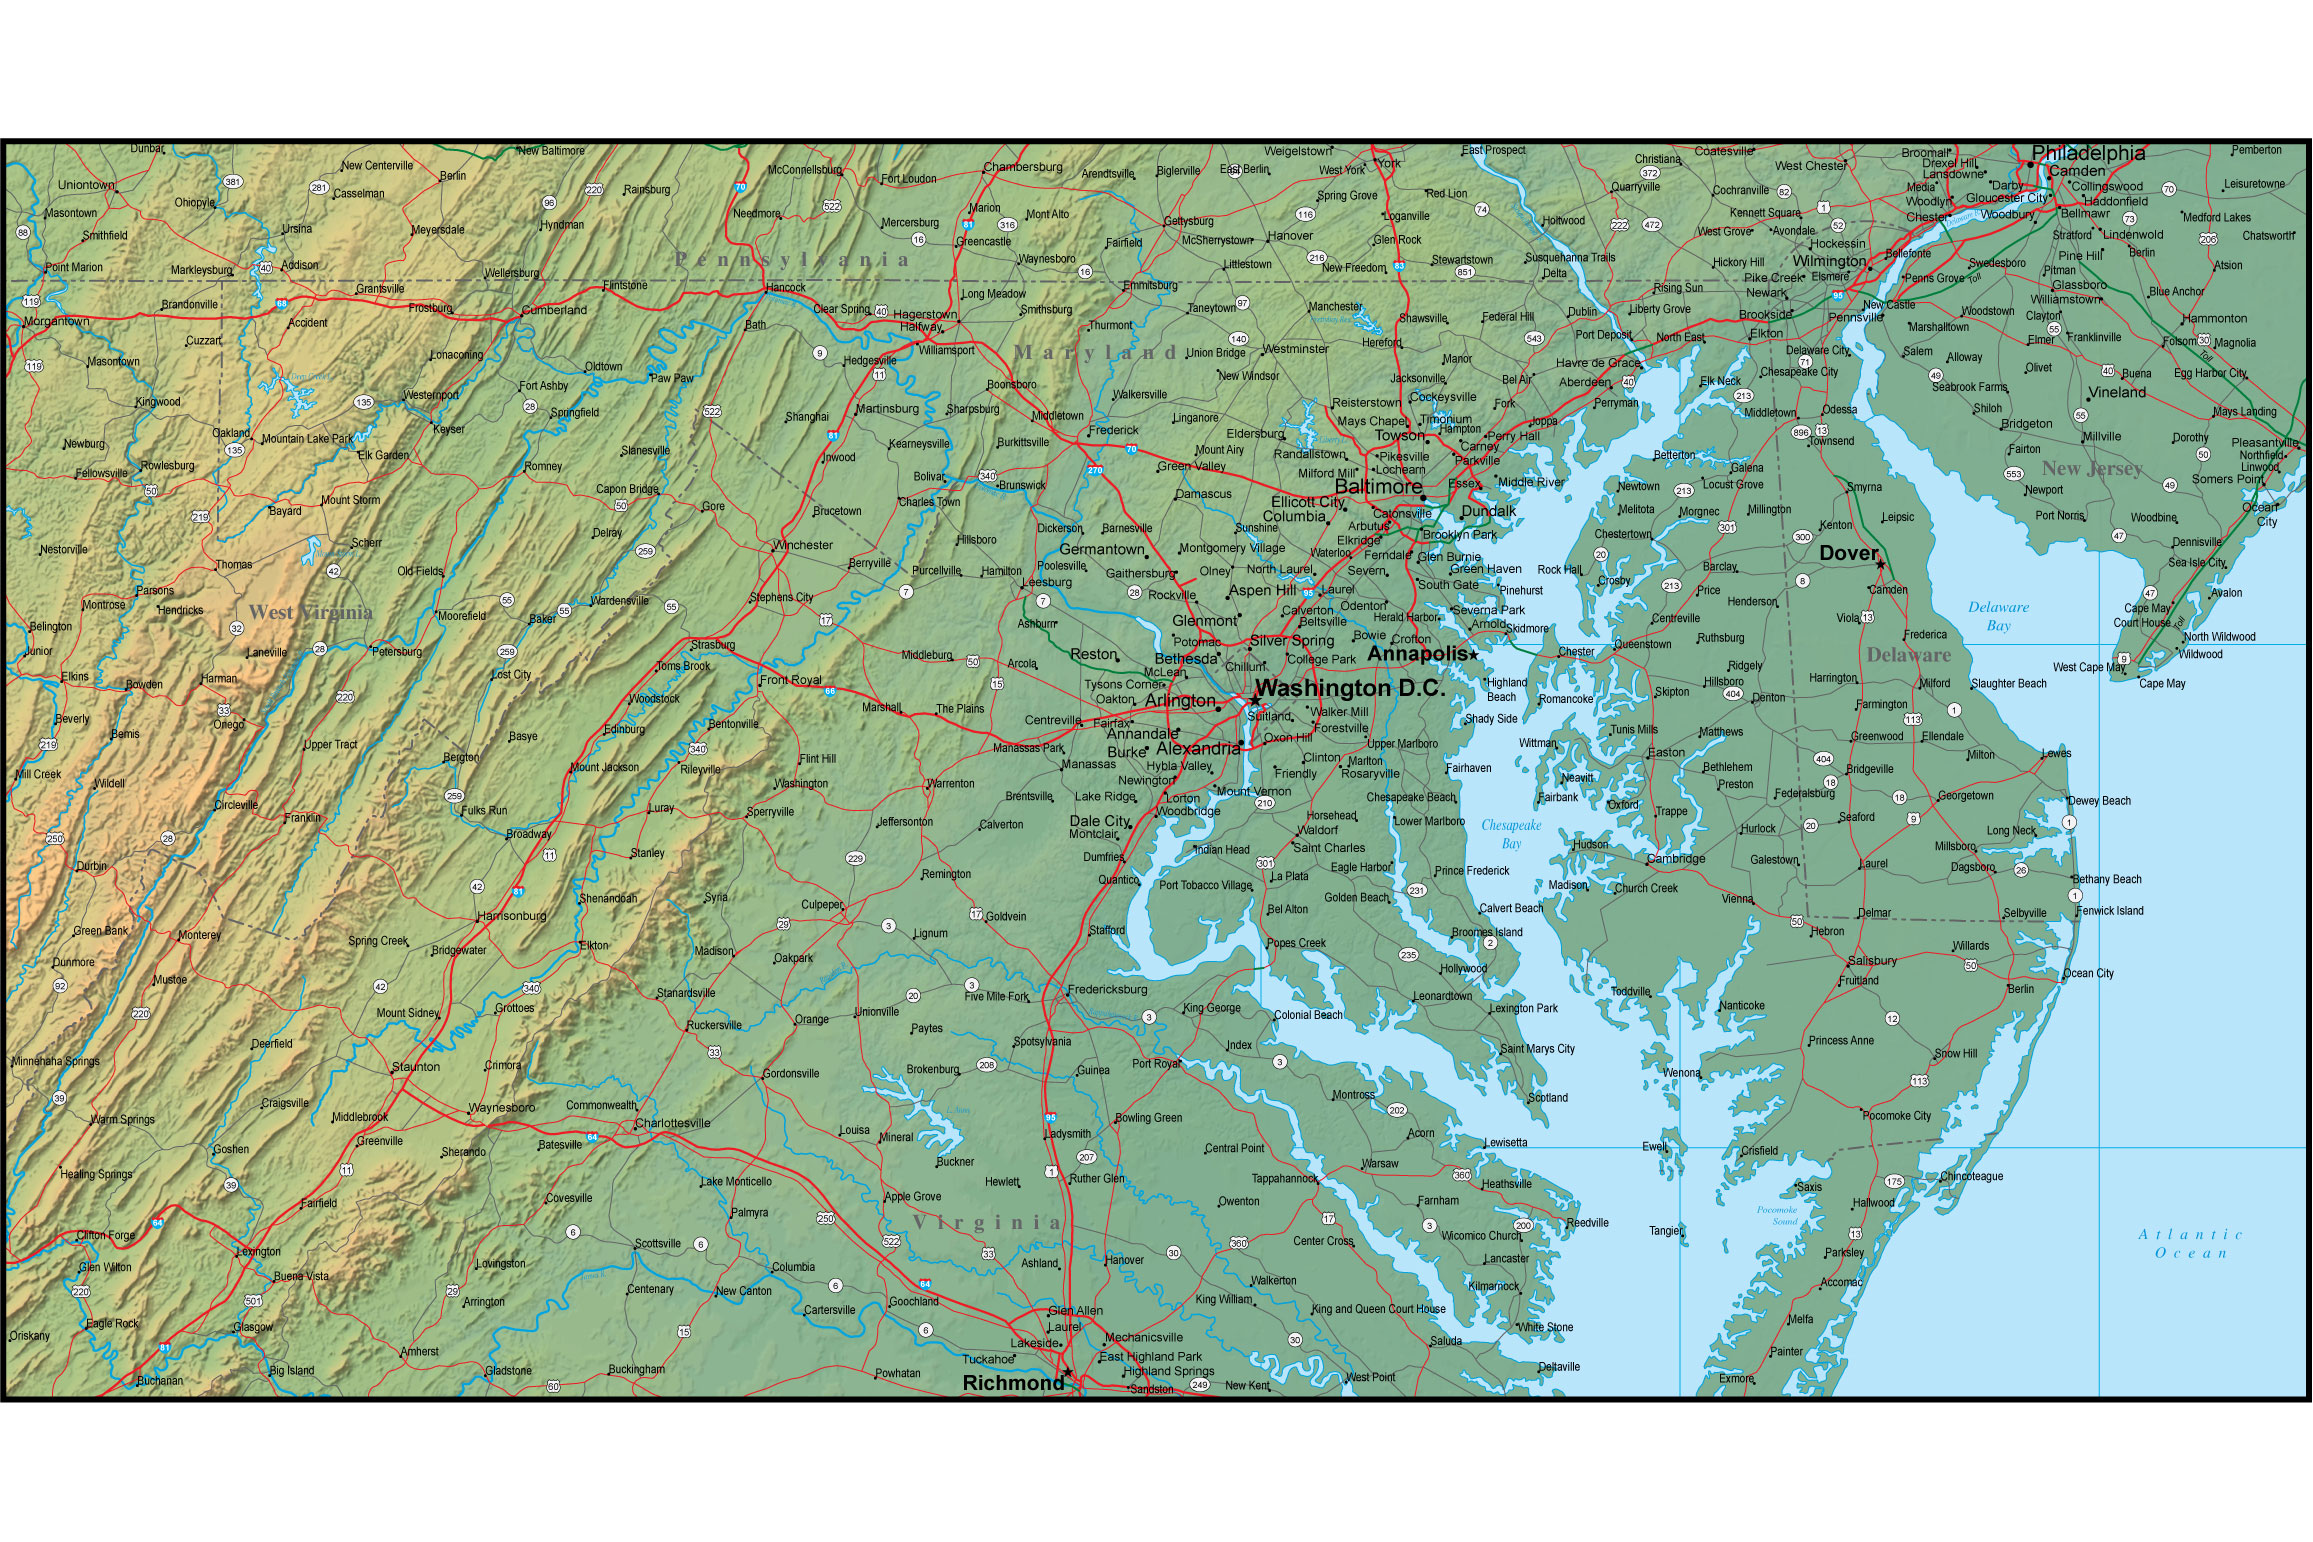 Map Of Maryland And The Surrounding Region